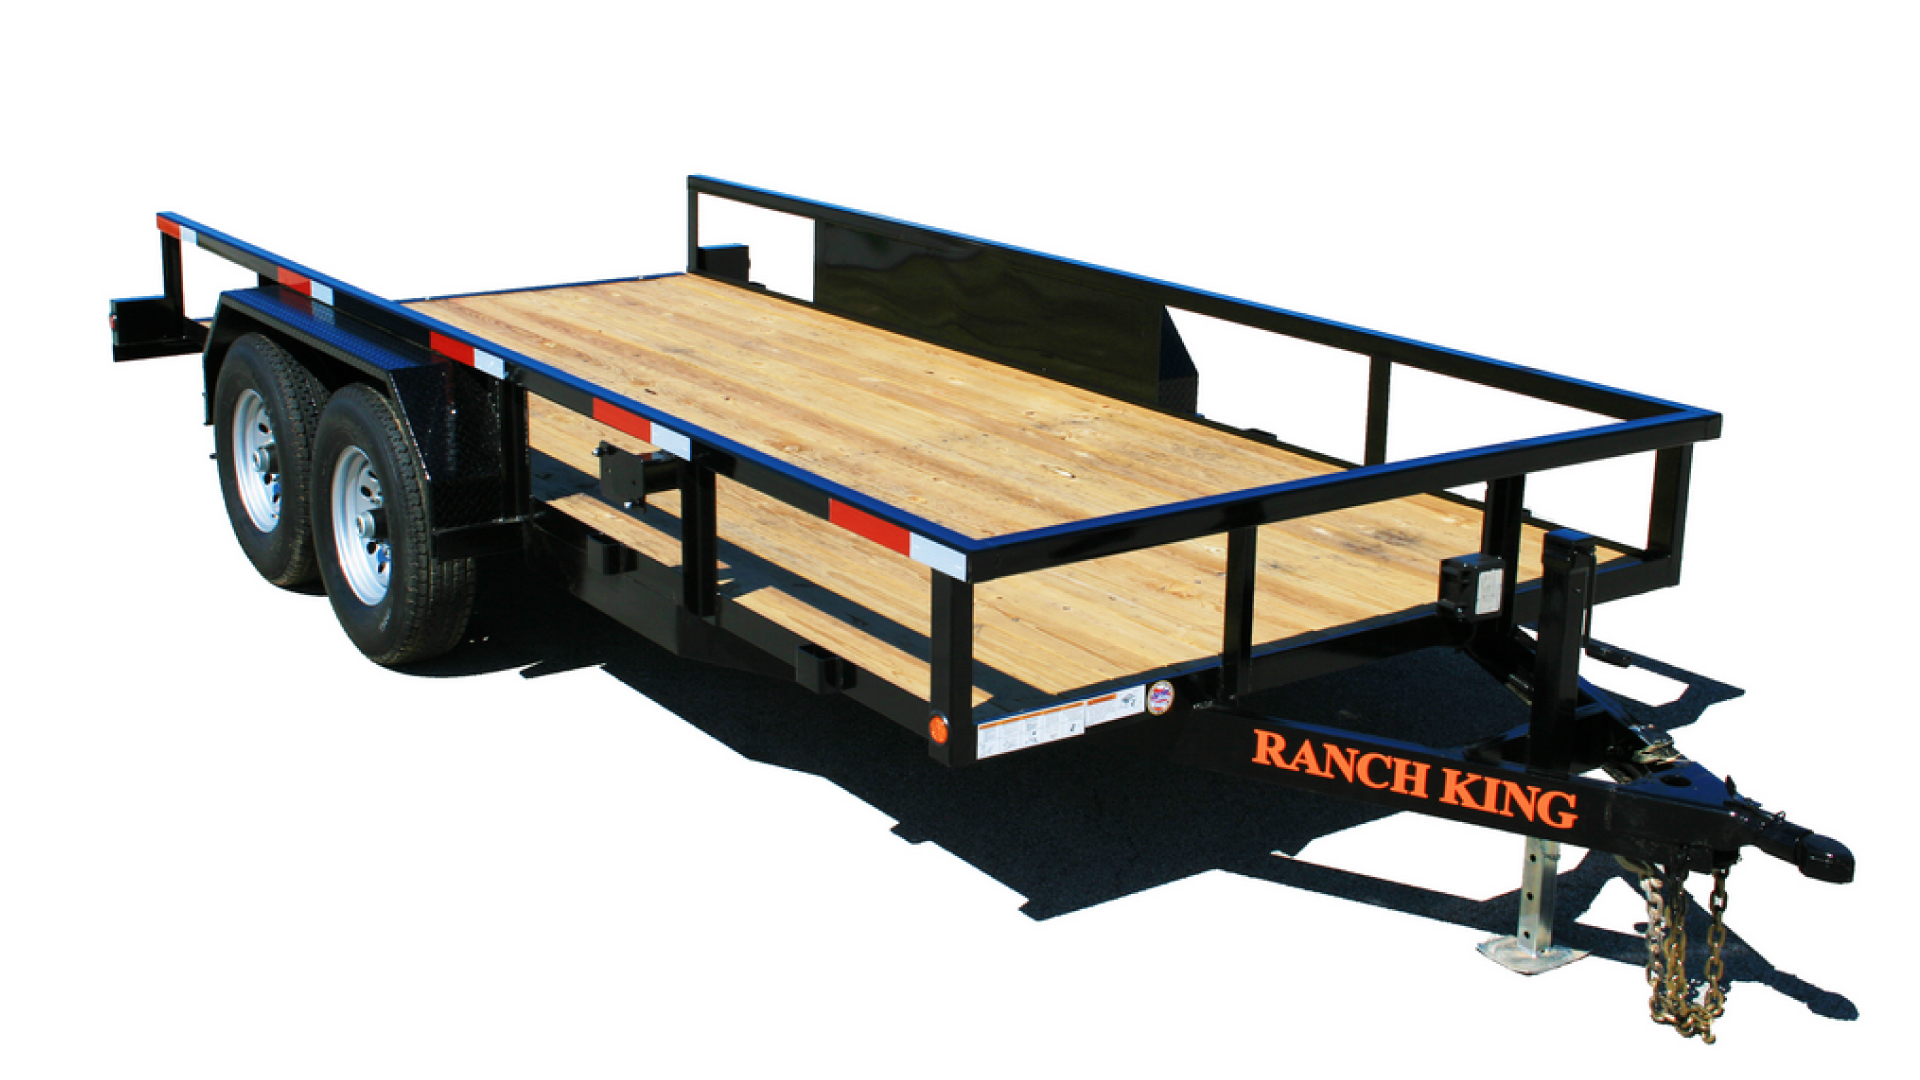 Ranchworldads Trailers >> Ranch King Trailers | 2019-2020 New Car Release and Reviews